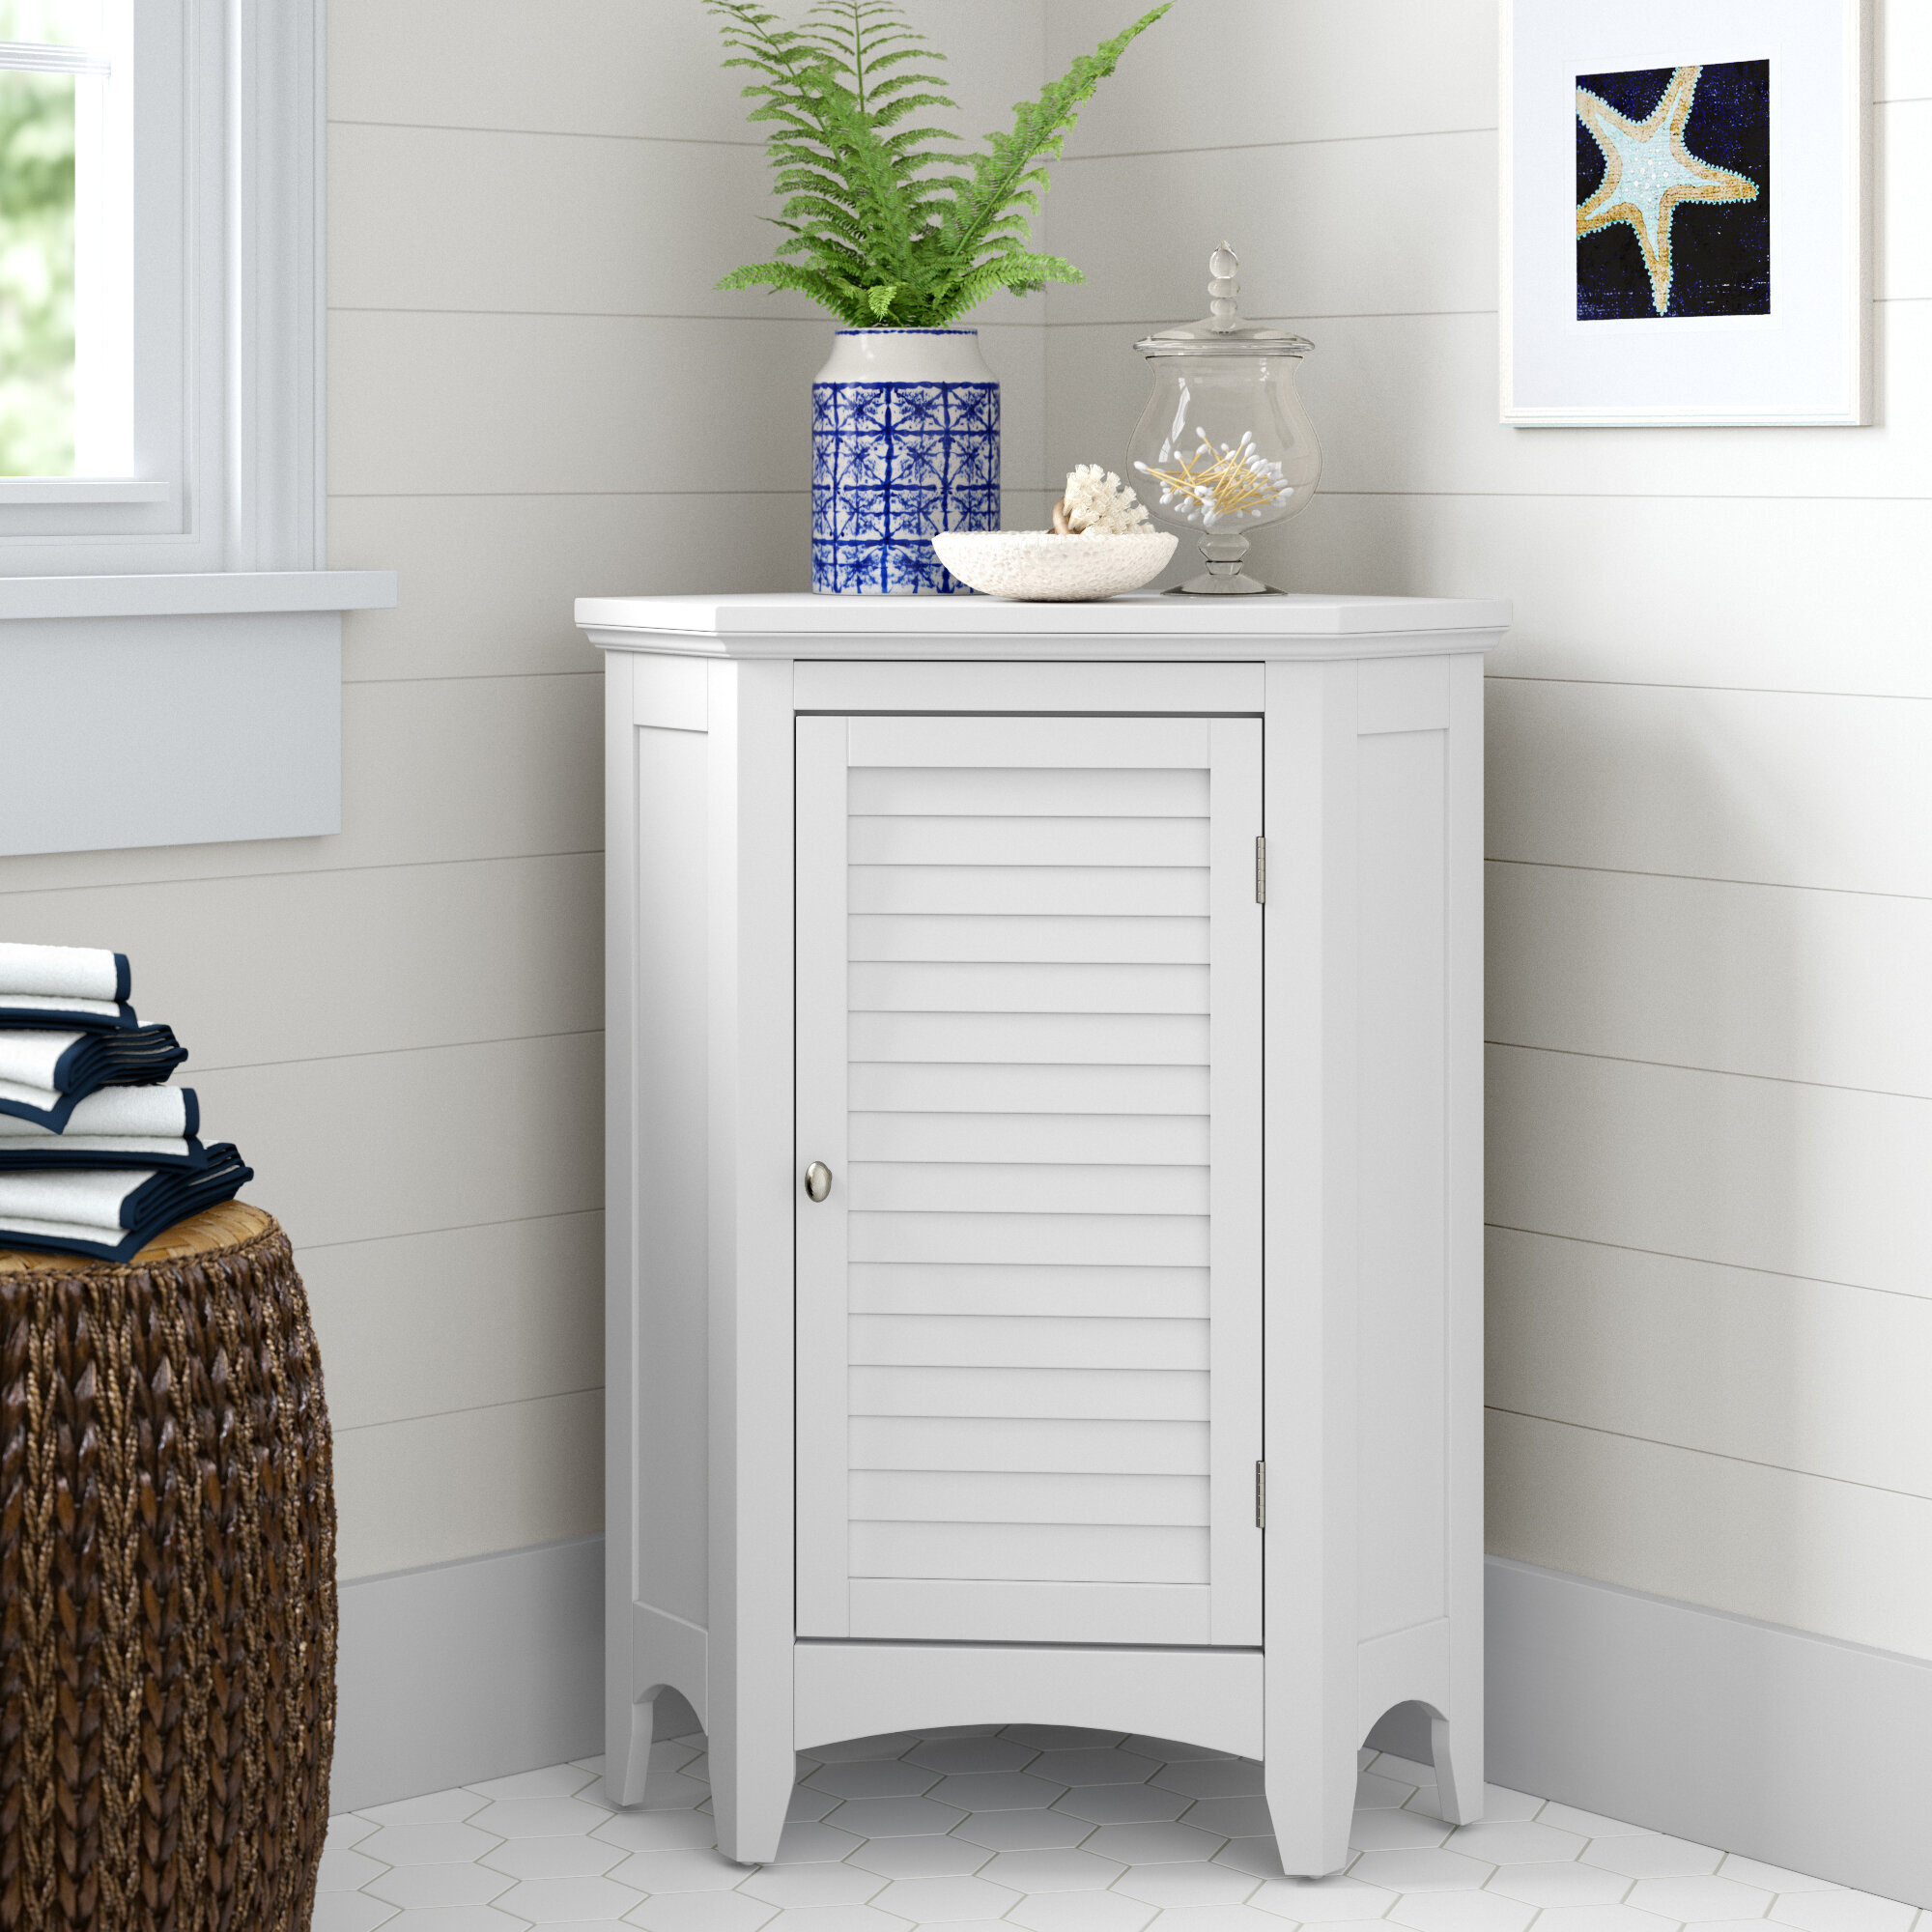 Beachcrest Home Broadview Park 24 75 W X 32 H X 17 D Free Standing Bathroom Cabinet Reviews Wayfair